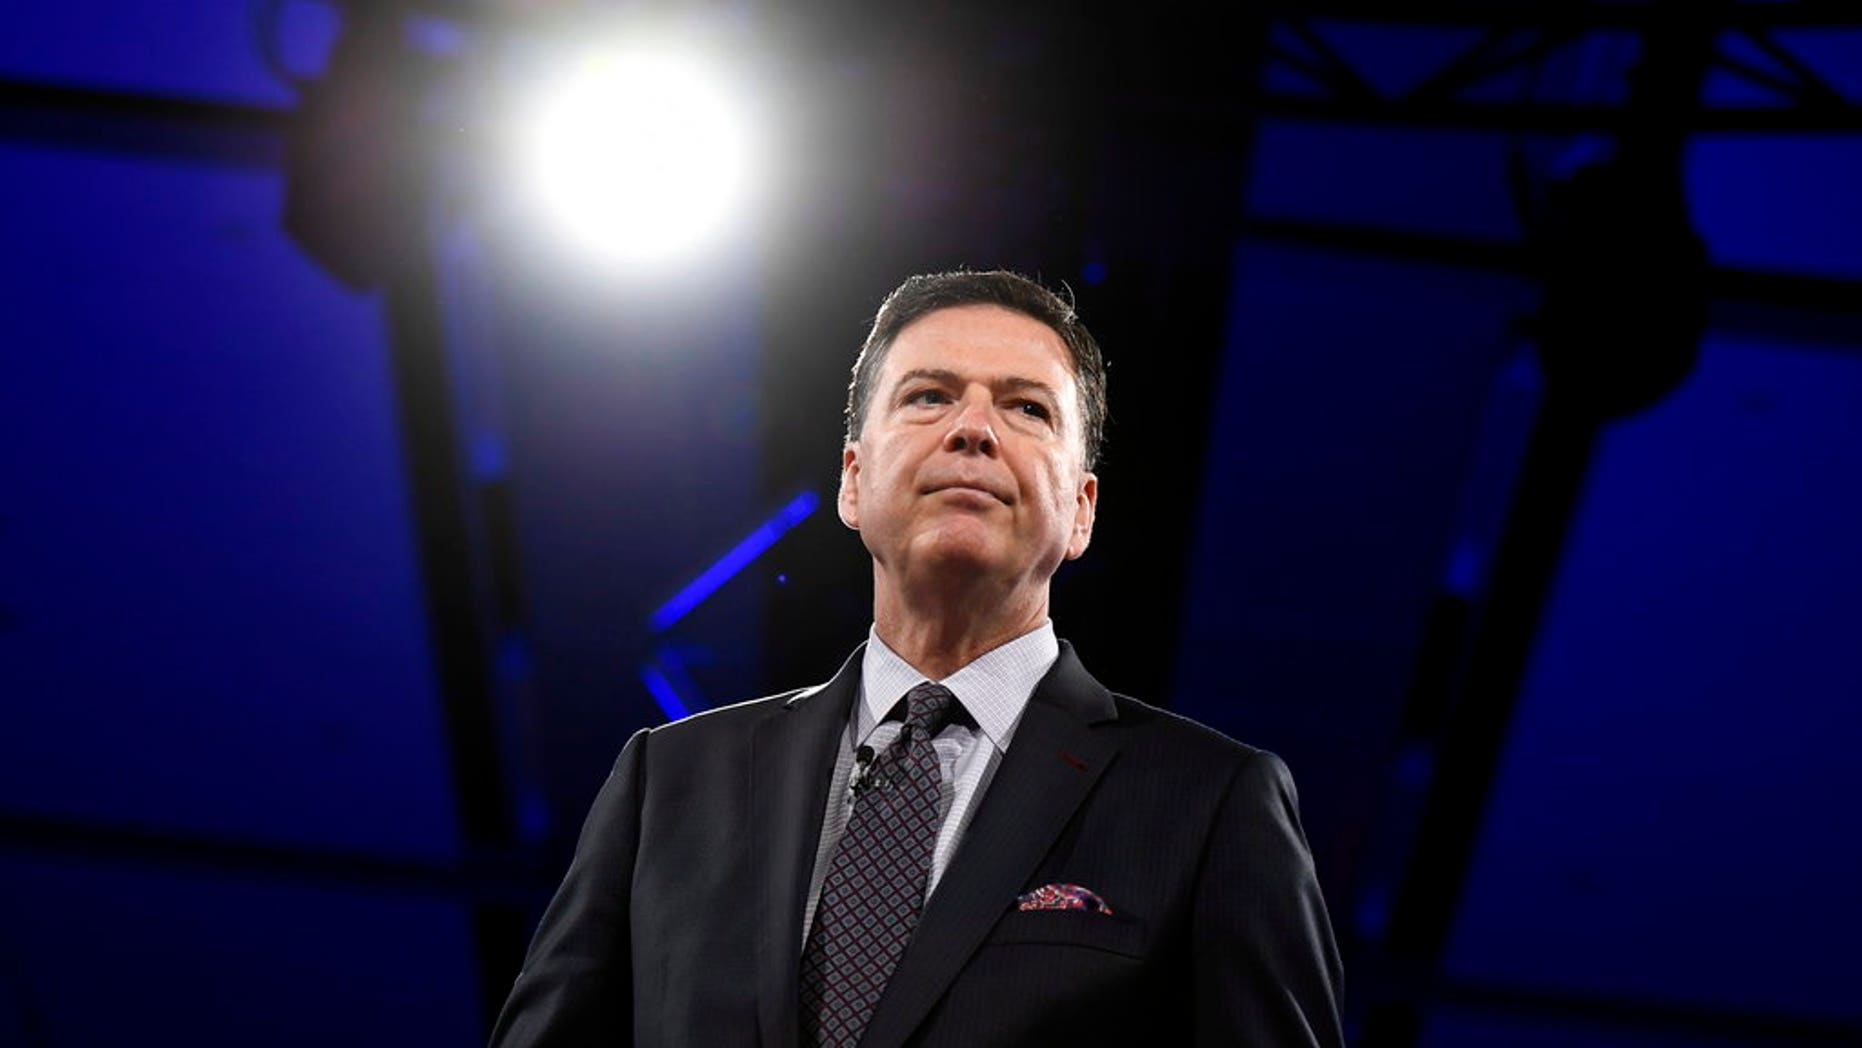 Former FBI director James Comey speaks during the Canada 2020 Conference in Ottawa on Tuesday, June 5, 2018. (Justin Tang/The Canadian Press via AP)